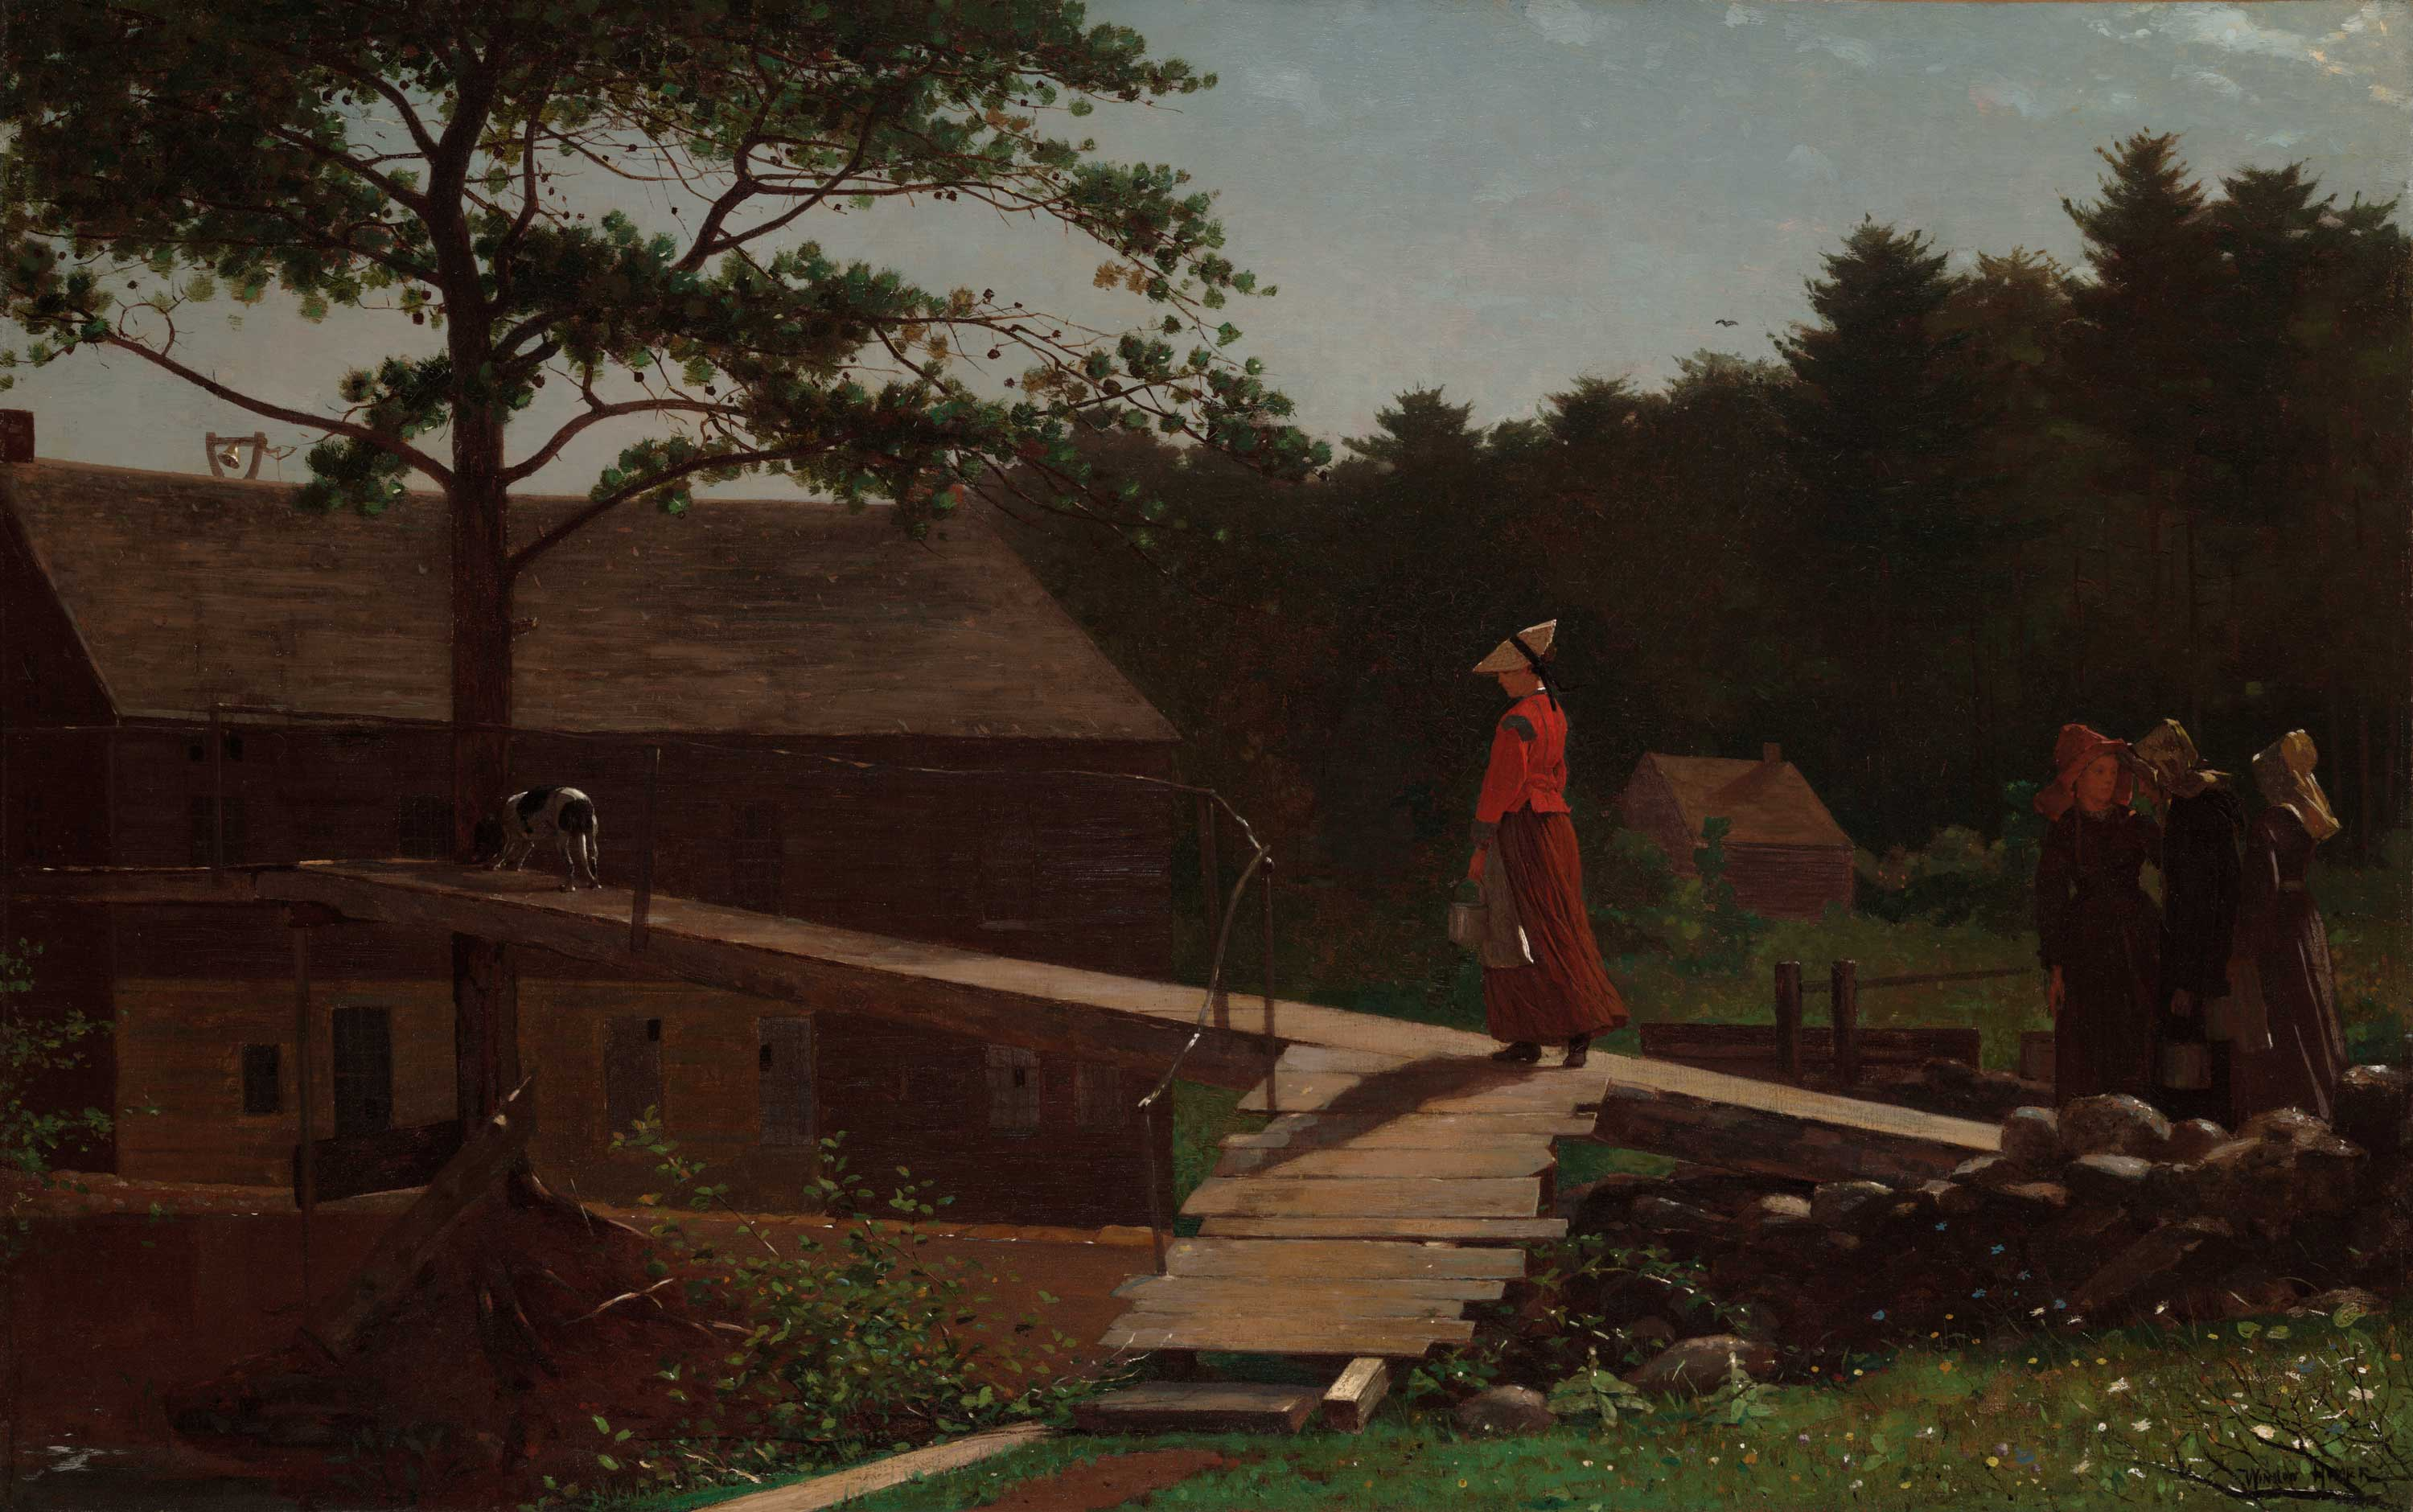 Painting of a woman in a red dress walking across a bridge